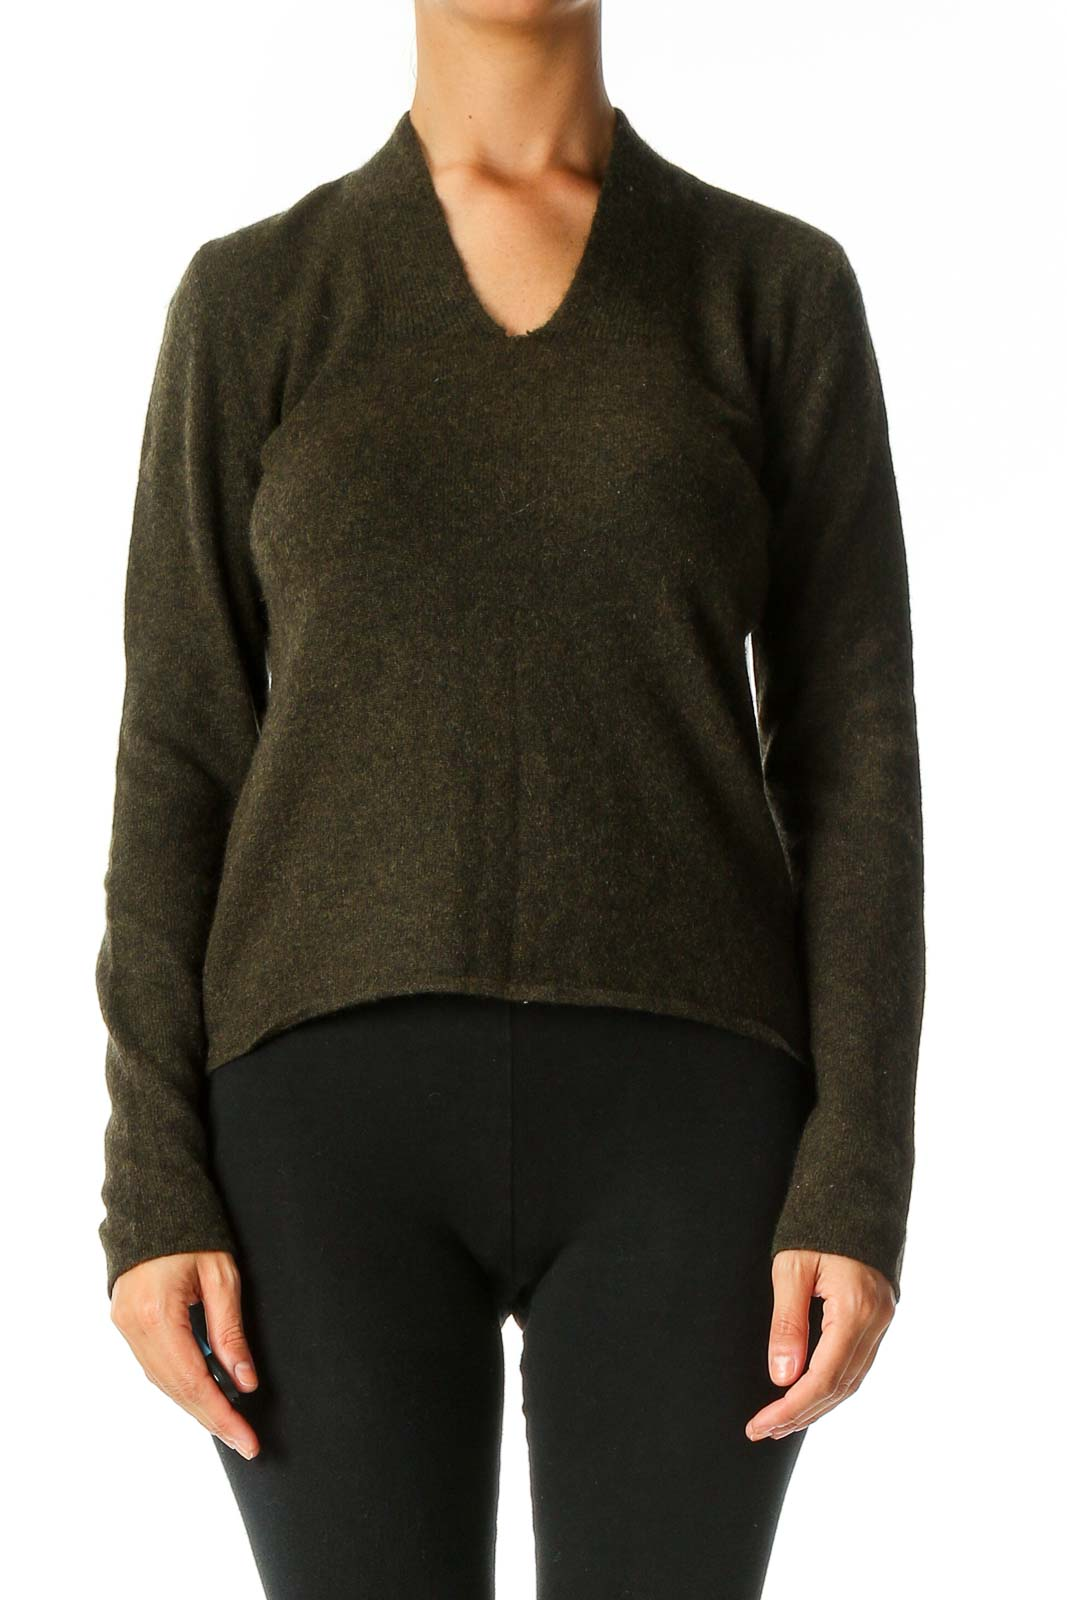 Green Textured Casual Sweater Front